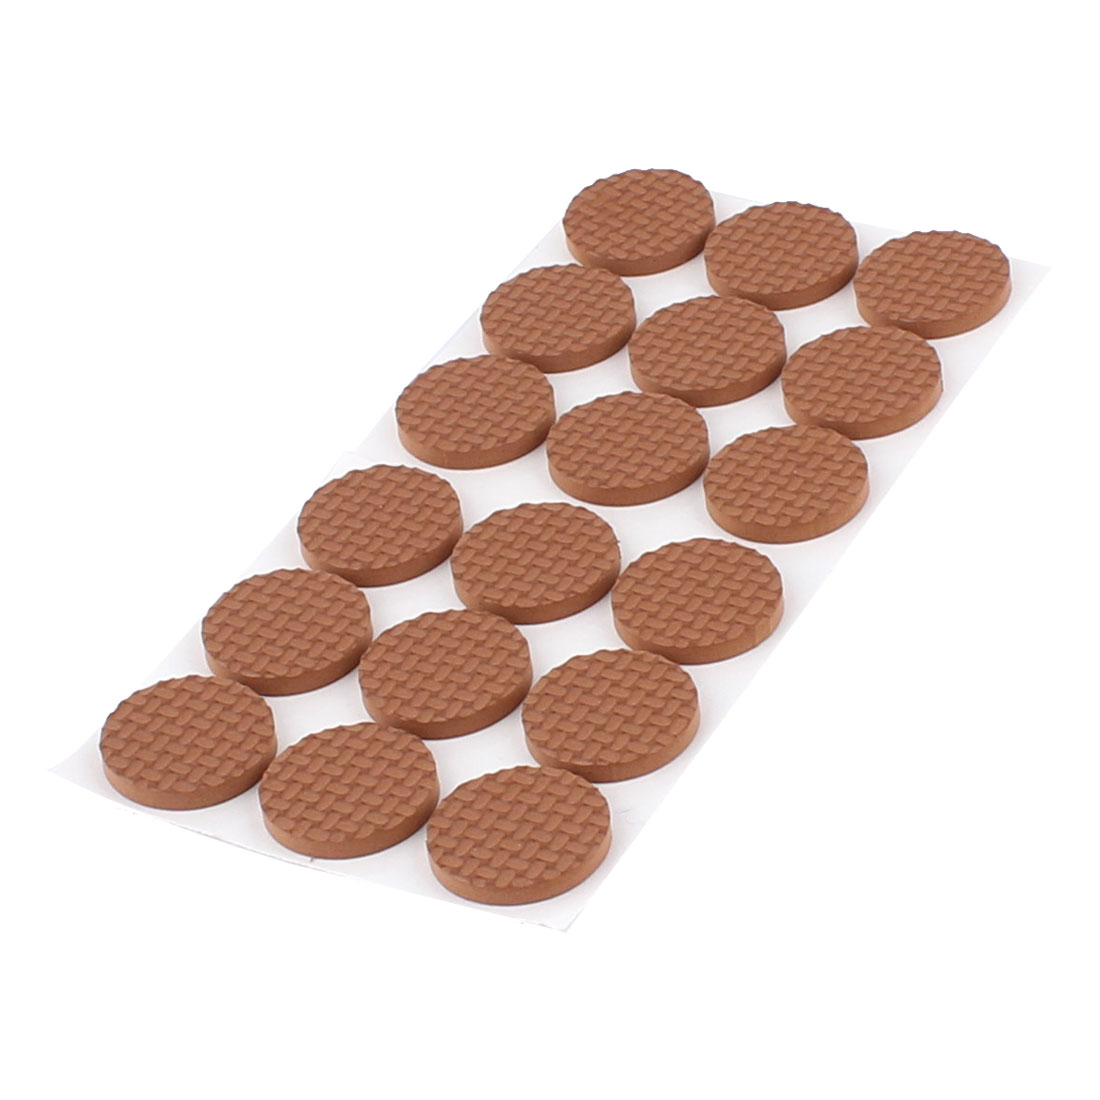 Table Chair EVA Round Anti Scratch Self Adhesive Furniture Feet Pads Covers Cushion Brown 30mm 12pcs